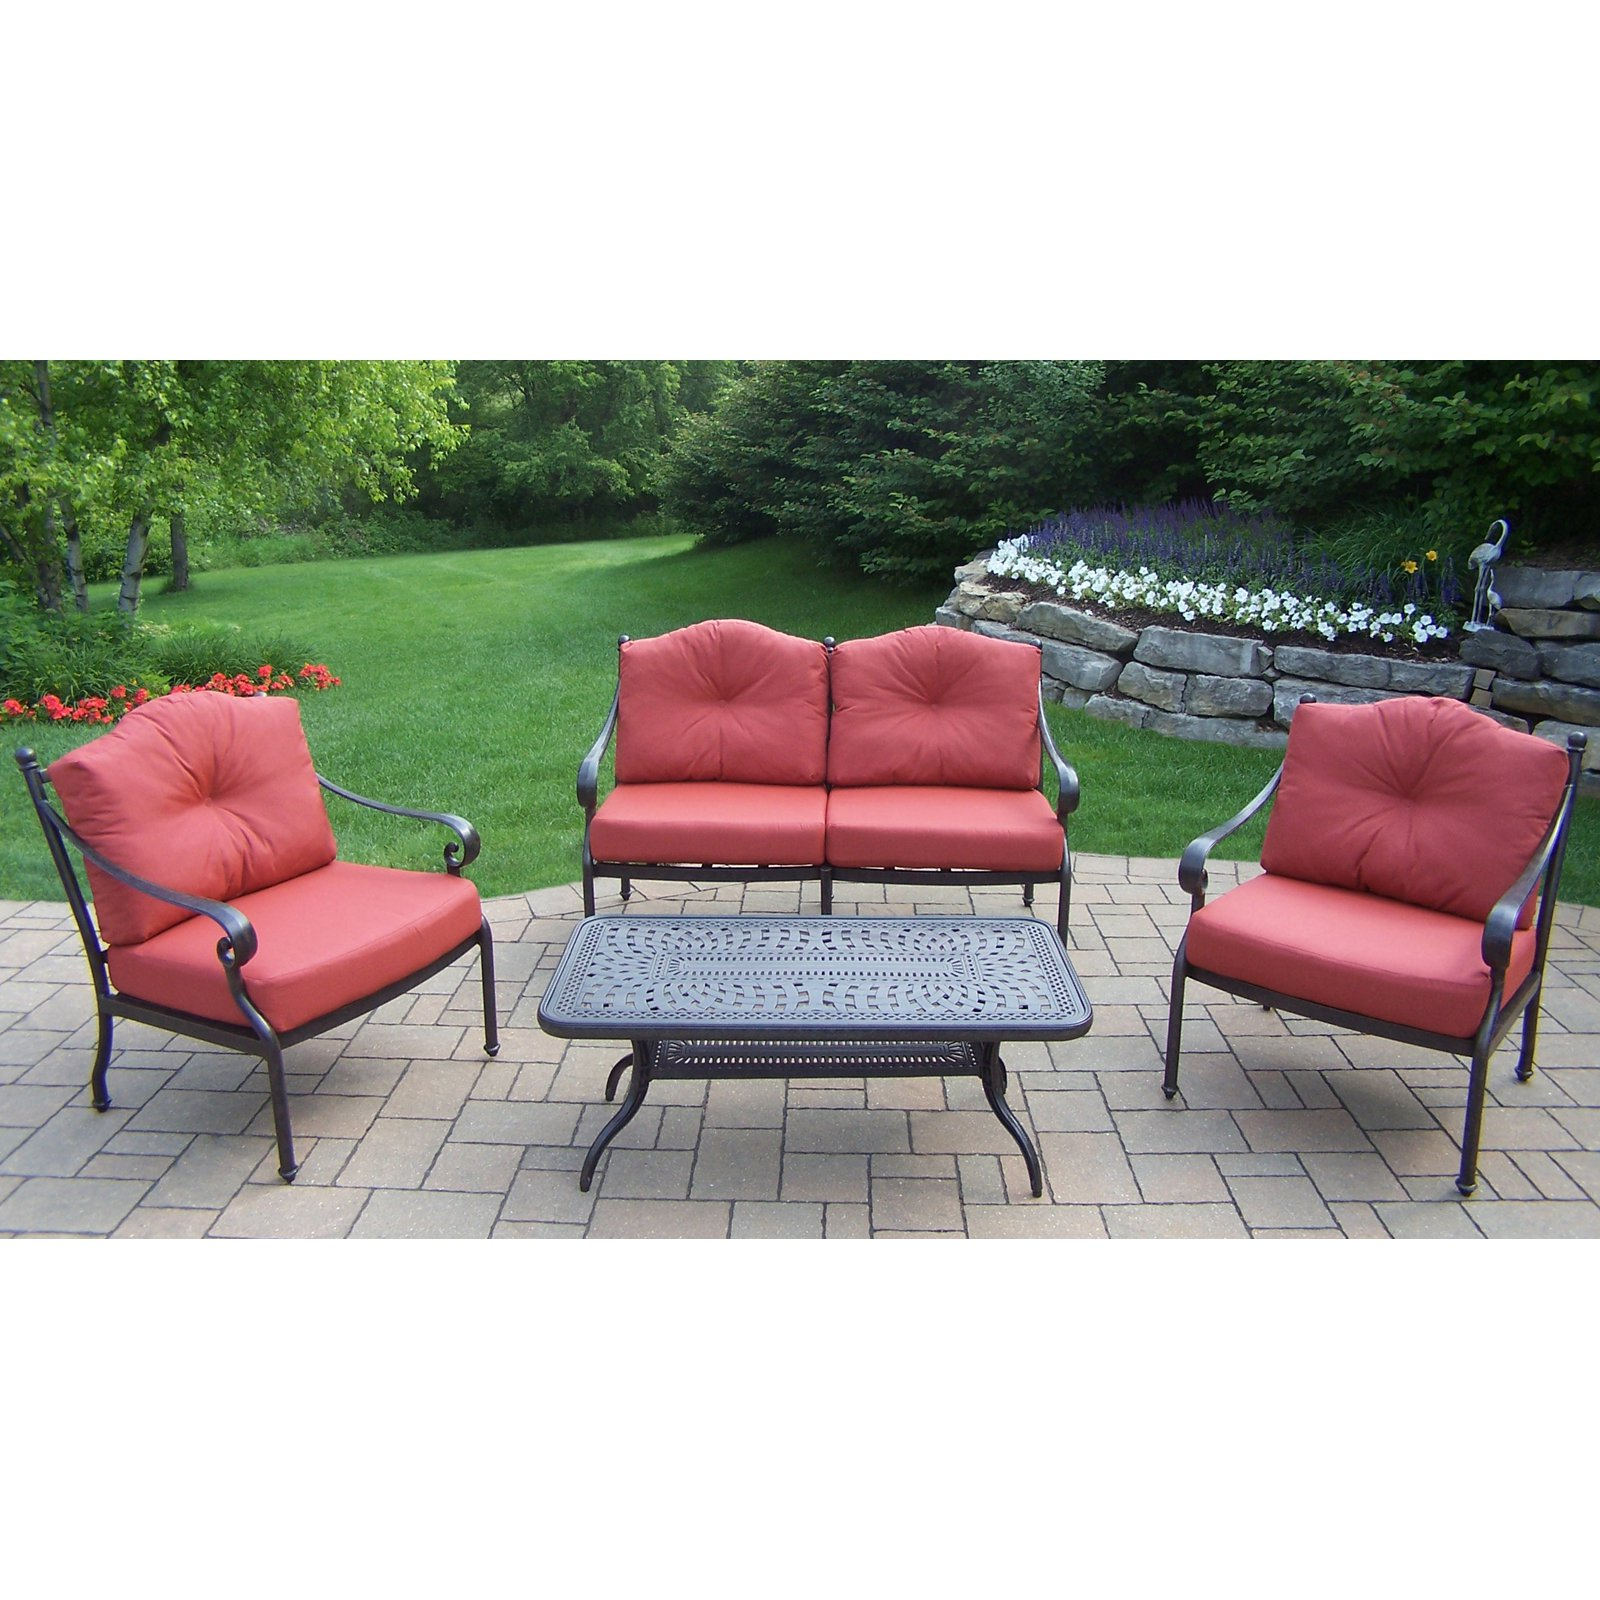 Oakland Living Berkley Aluminum 4 Piece Patio Conversation Set by Oakland Living Corporation